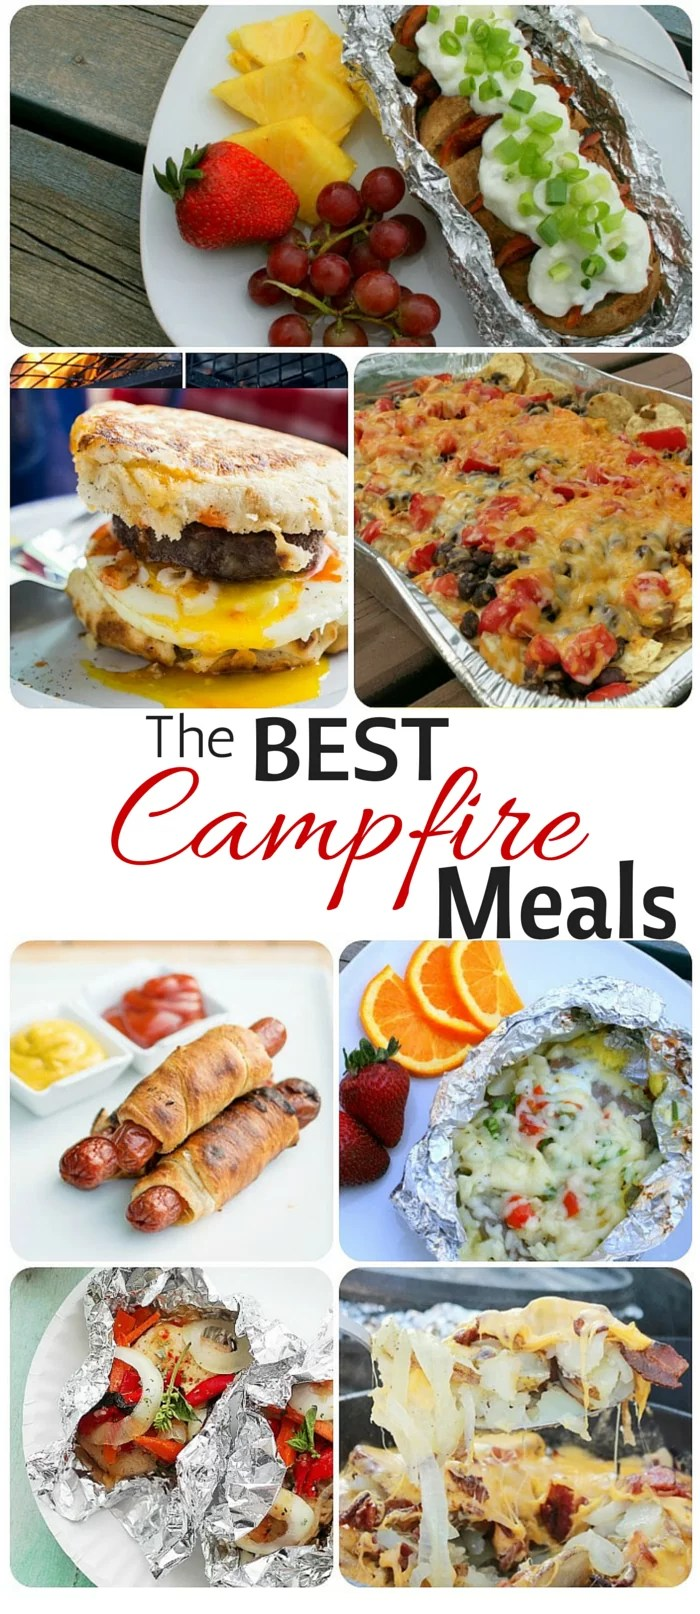 Simple And Easy Camping Meals Breakfast Lunch Dinner